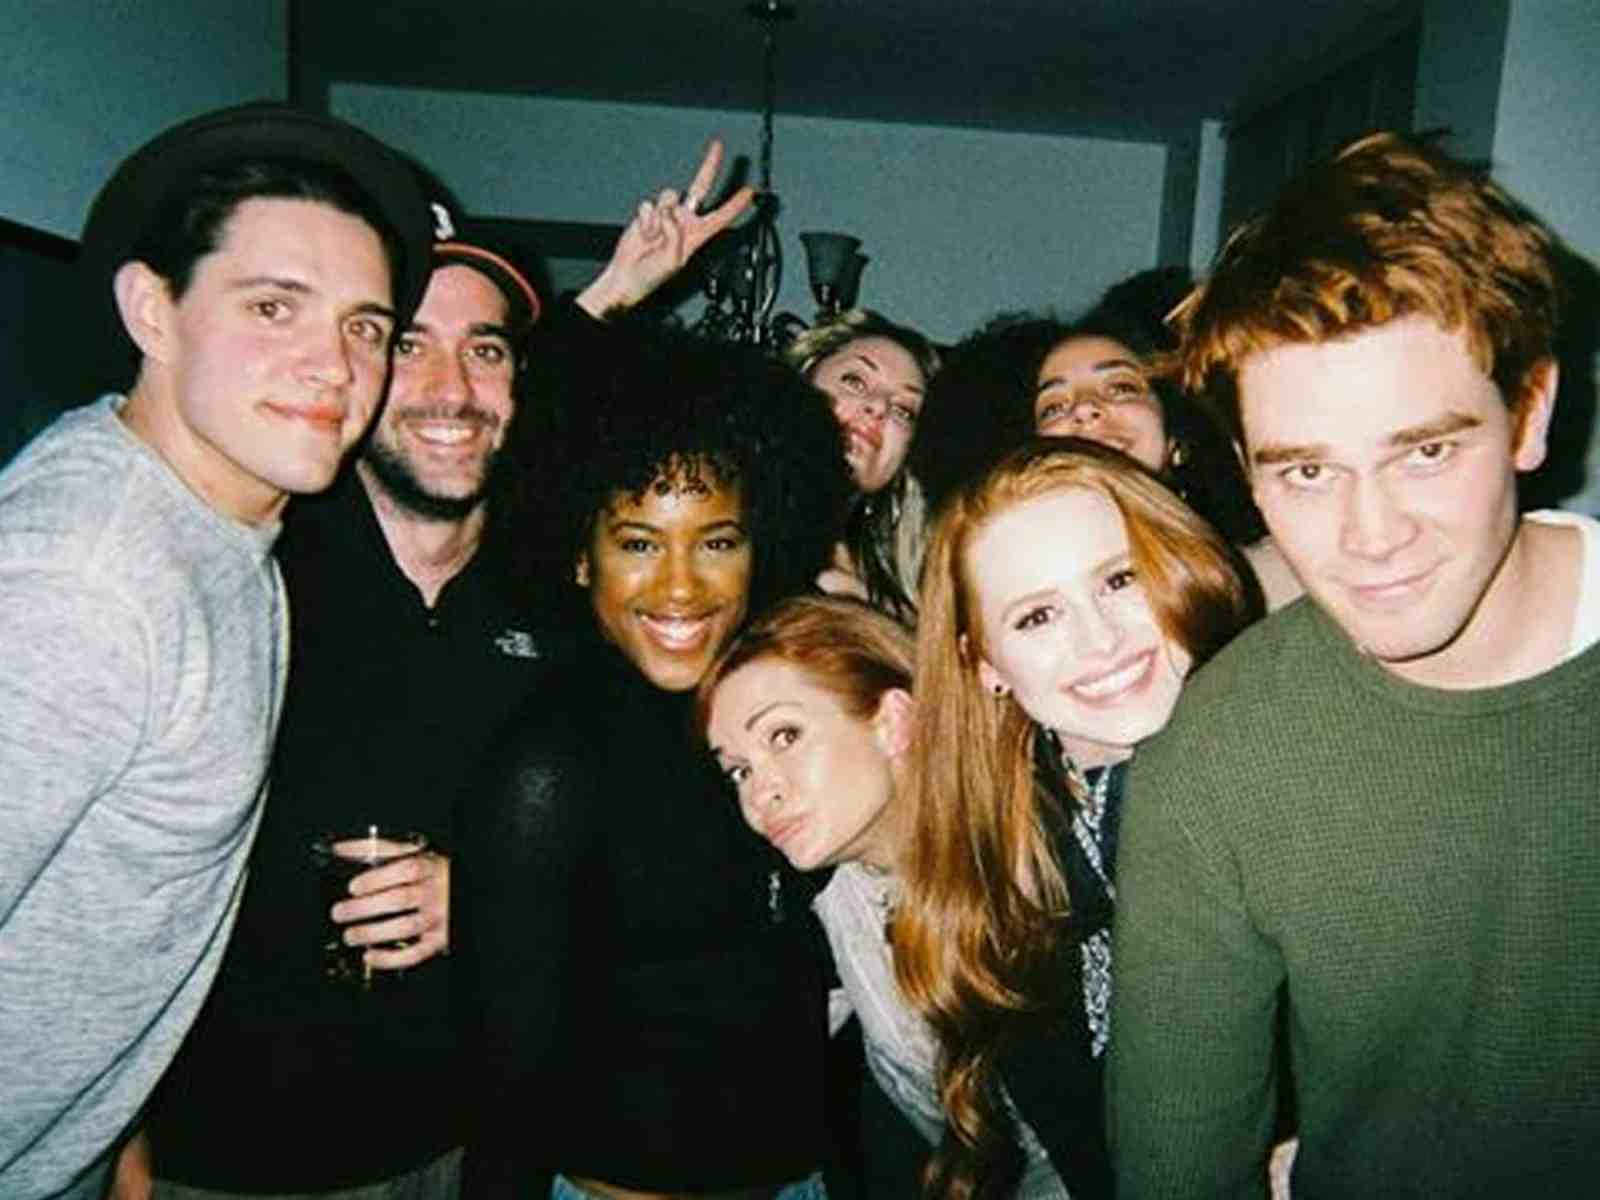 Are you a big fan of Riverdale? If so, you'll love this experience of what it was like to meet the cast of Riverdale at a meet and greet.